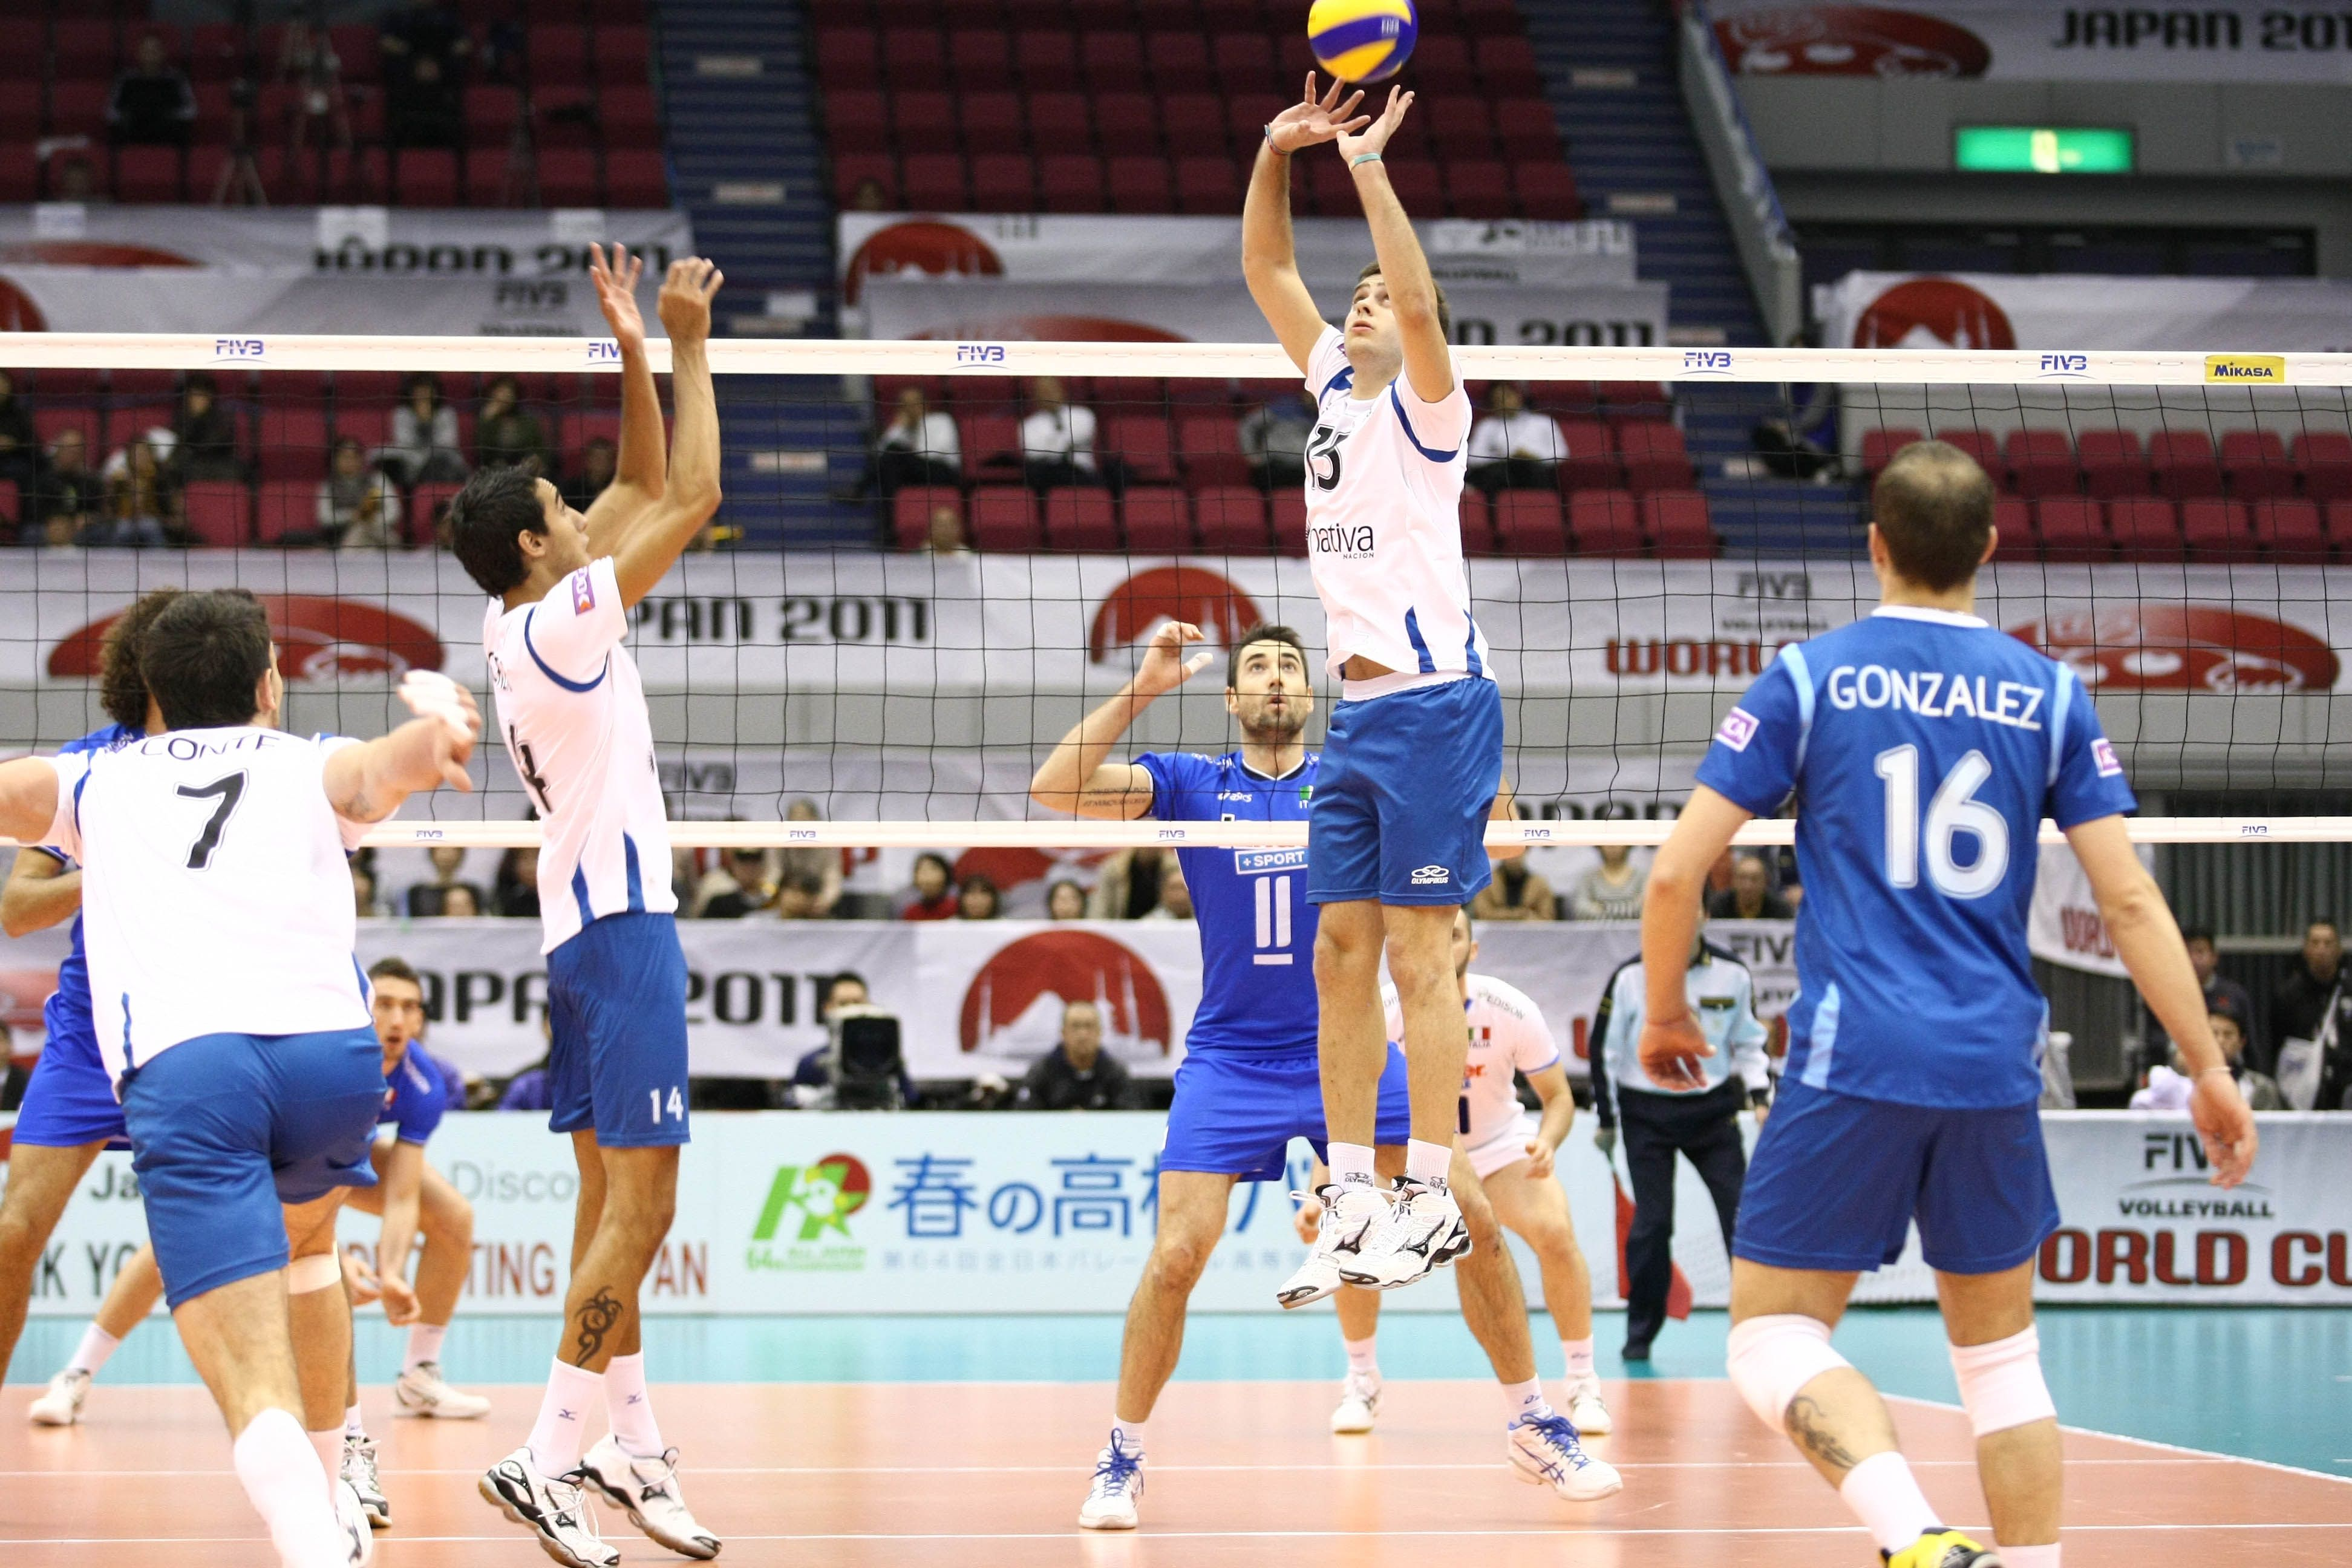 Argentina S Luciano De Cecco 15 Sets Pablo Crer 14 Volleyball Volley Basketball Court